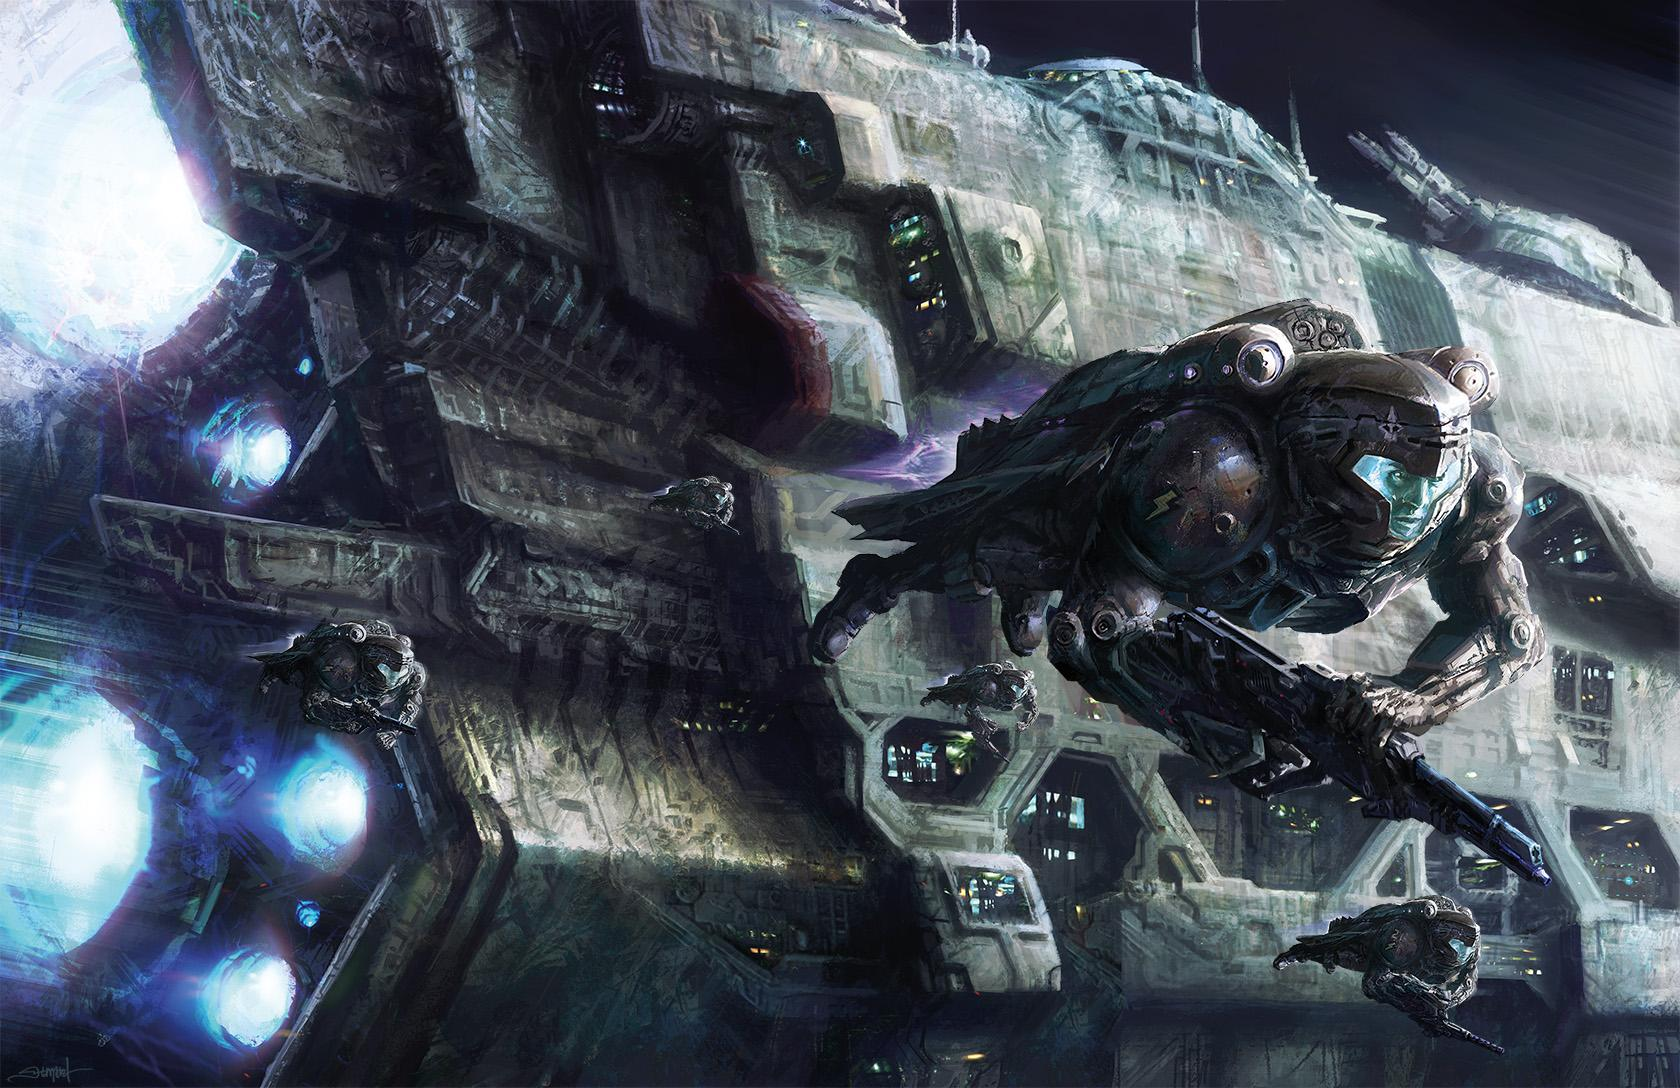 the_lost_fleet__dreadnought_by_moonxels-d4m4zcg.jpg (JPEG Image, 1680 × 1088 pixels) - Scaled (48%)